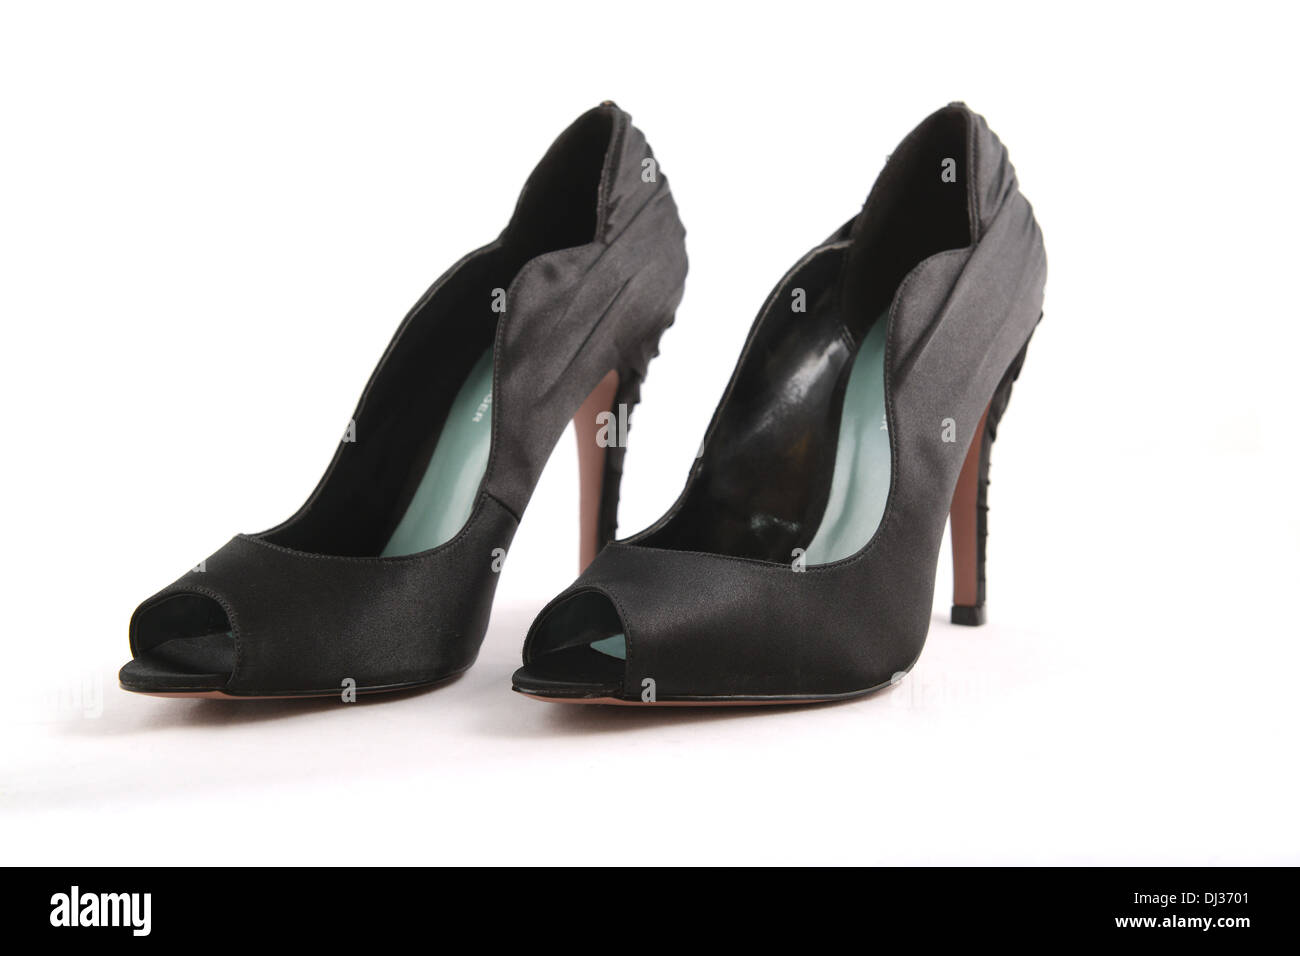 Black ladies shoes with stiletto heels mad by Kurt Gieger - Stock Image